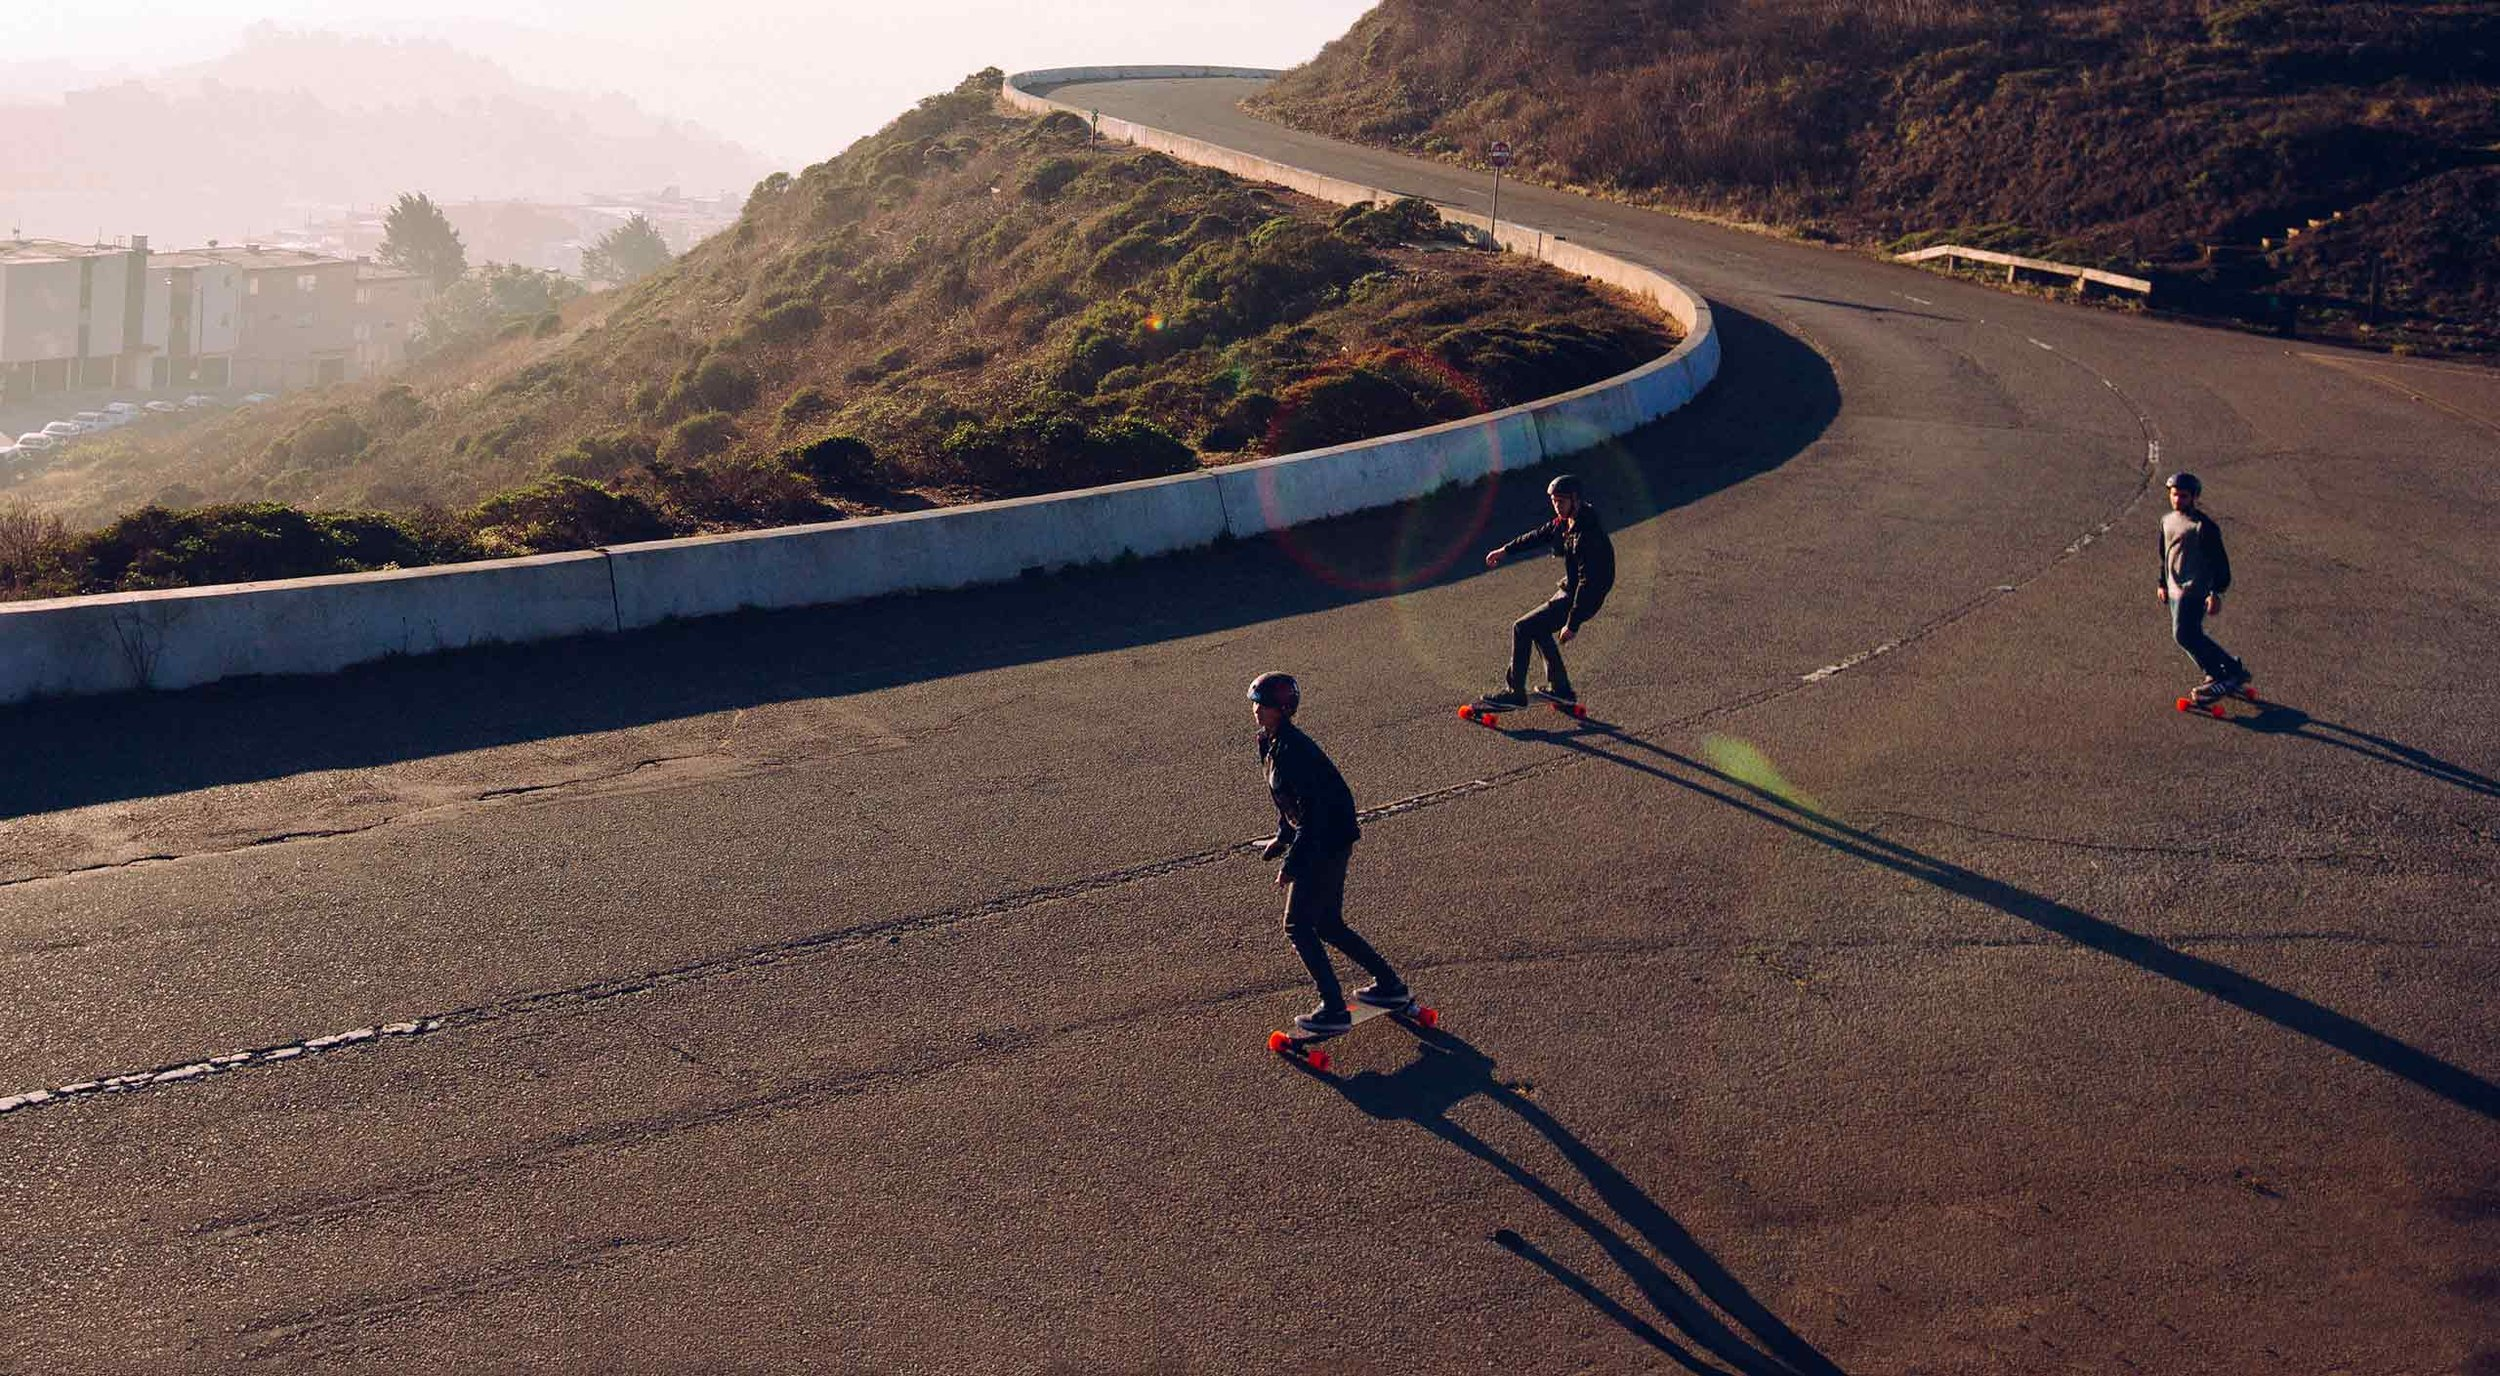 rawness_boosted_boards_curves_hills.jpg